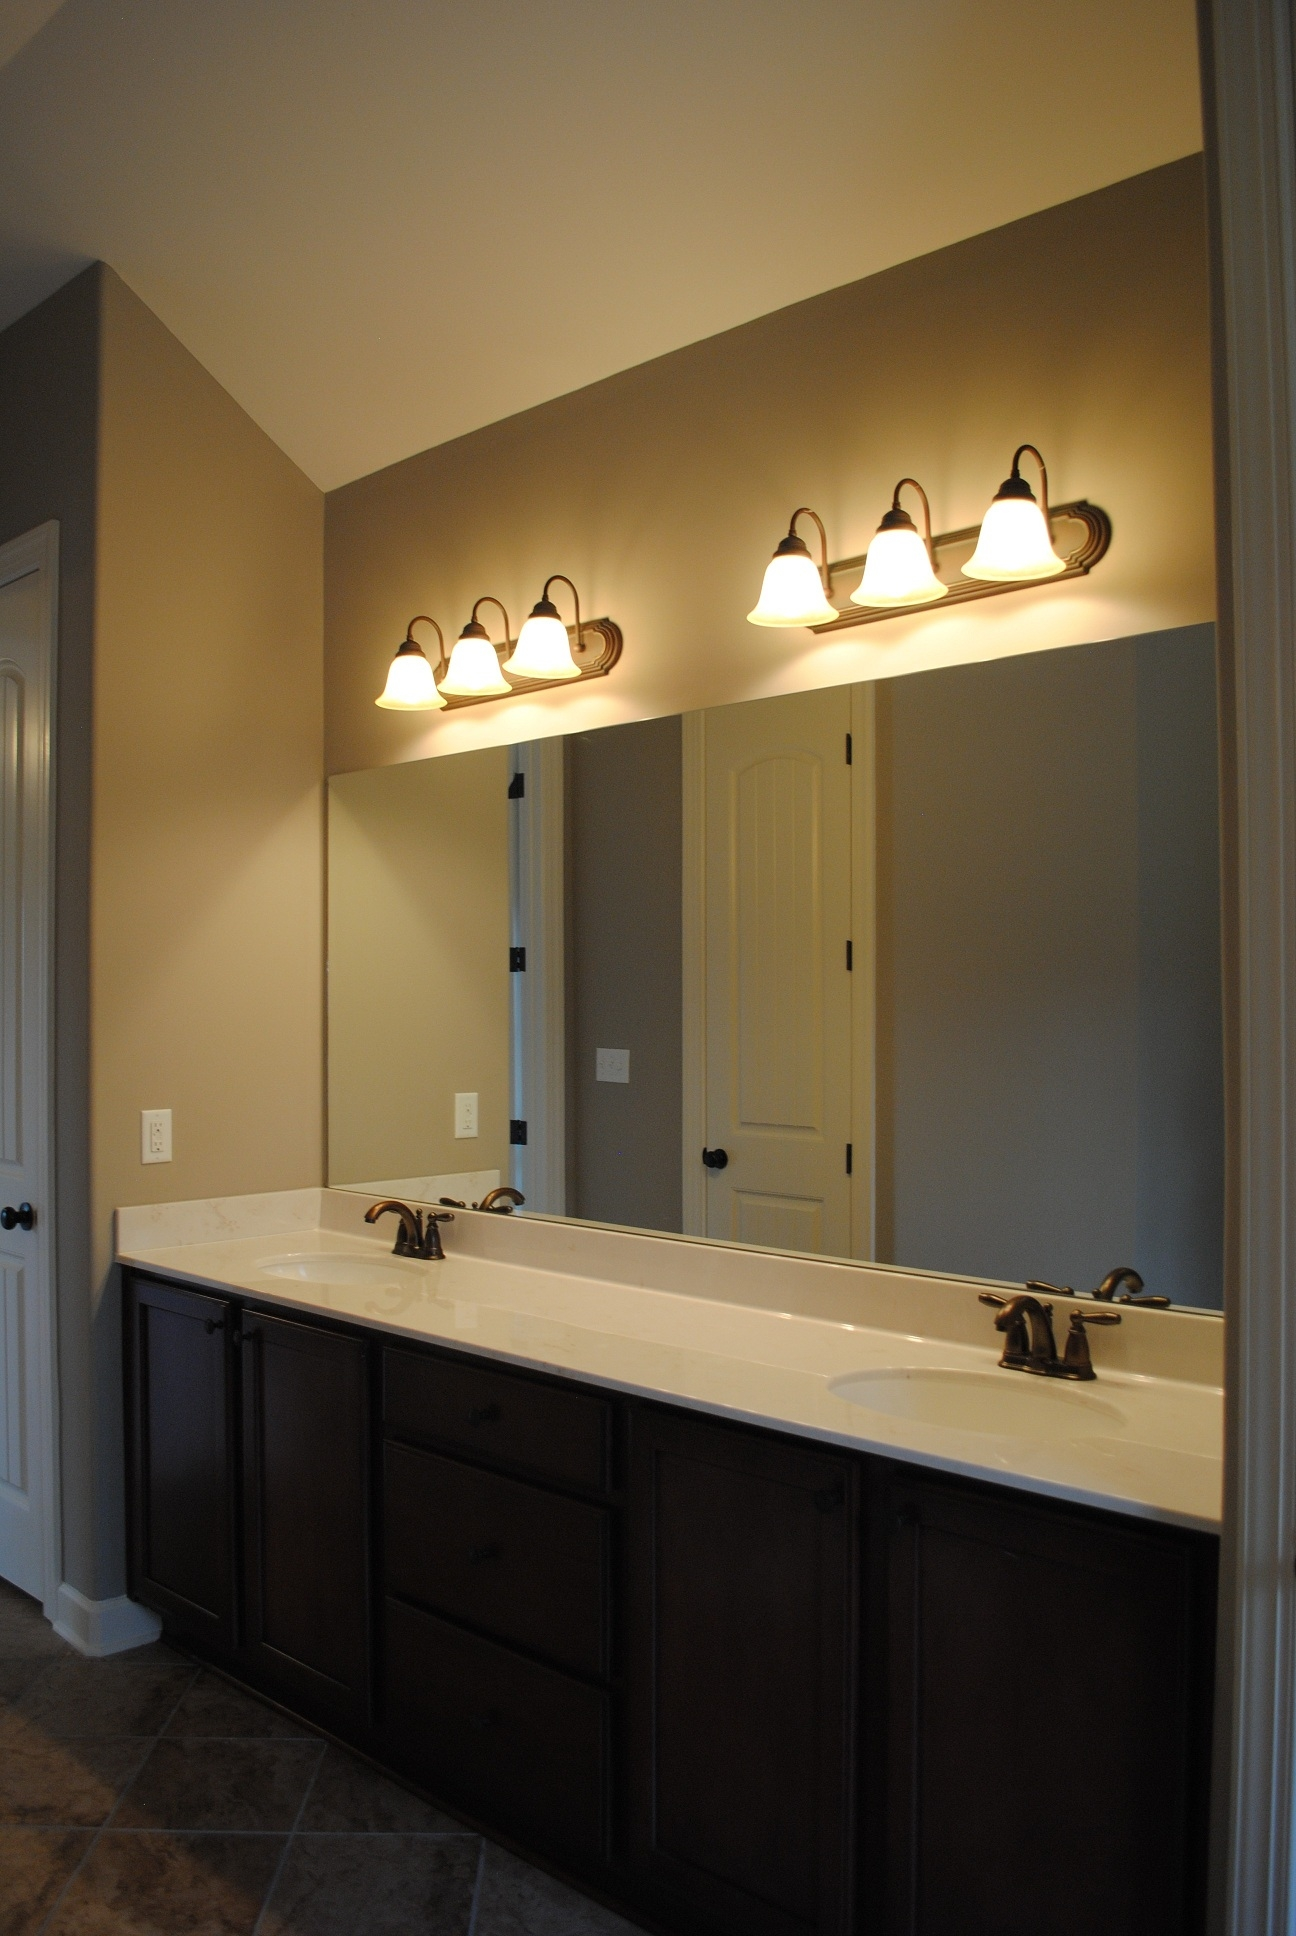 Permalink to Bathroom Mirror And Lights Ideas